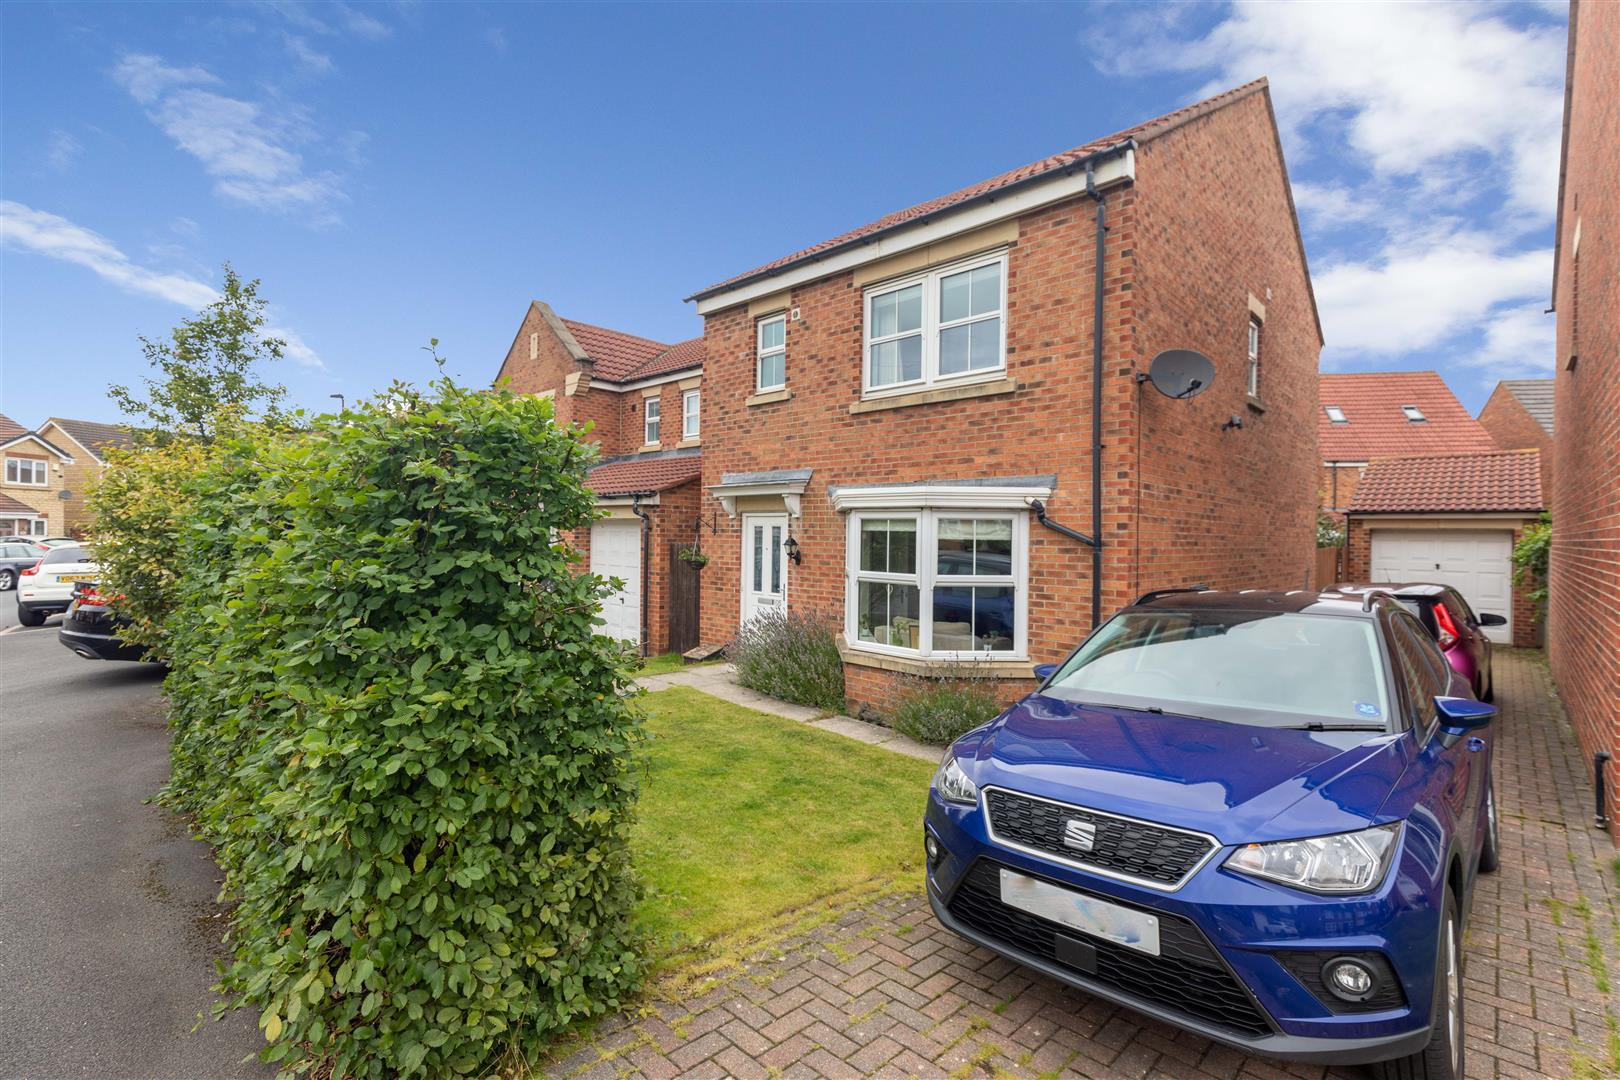 3 bed detached house for sale in Newcastle Upon Tyne, NE27 0BD, NE27